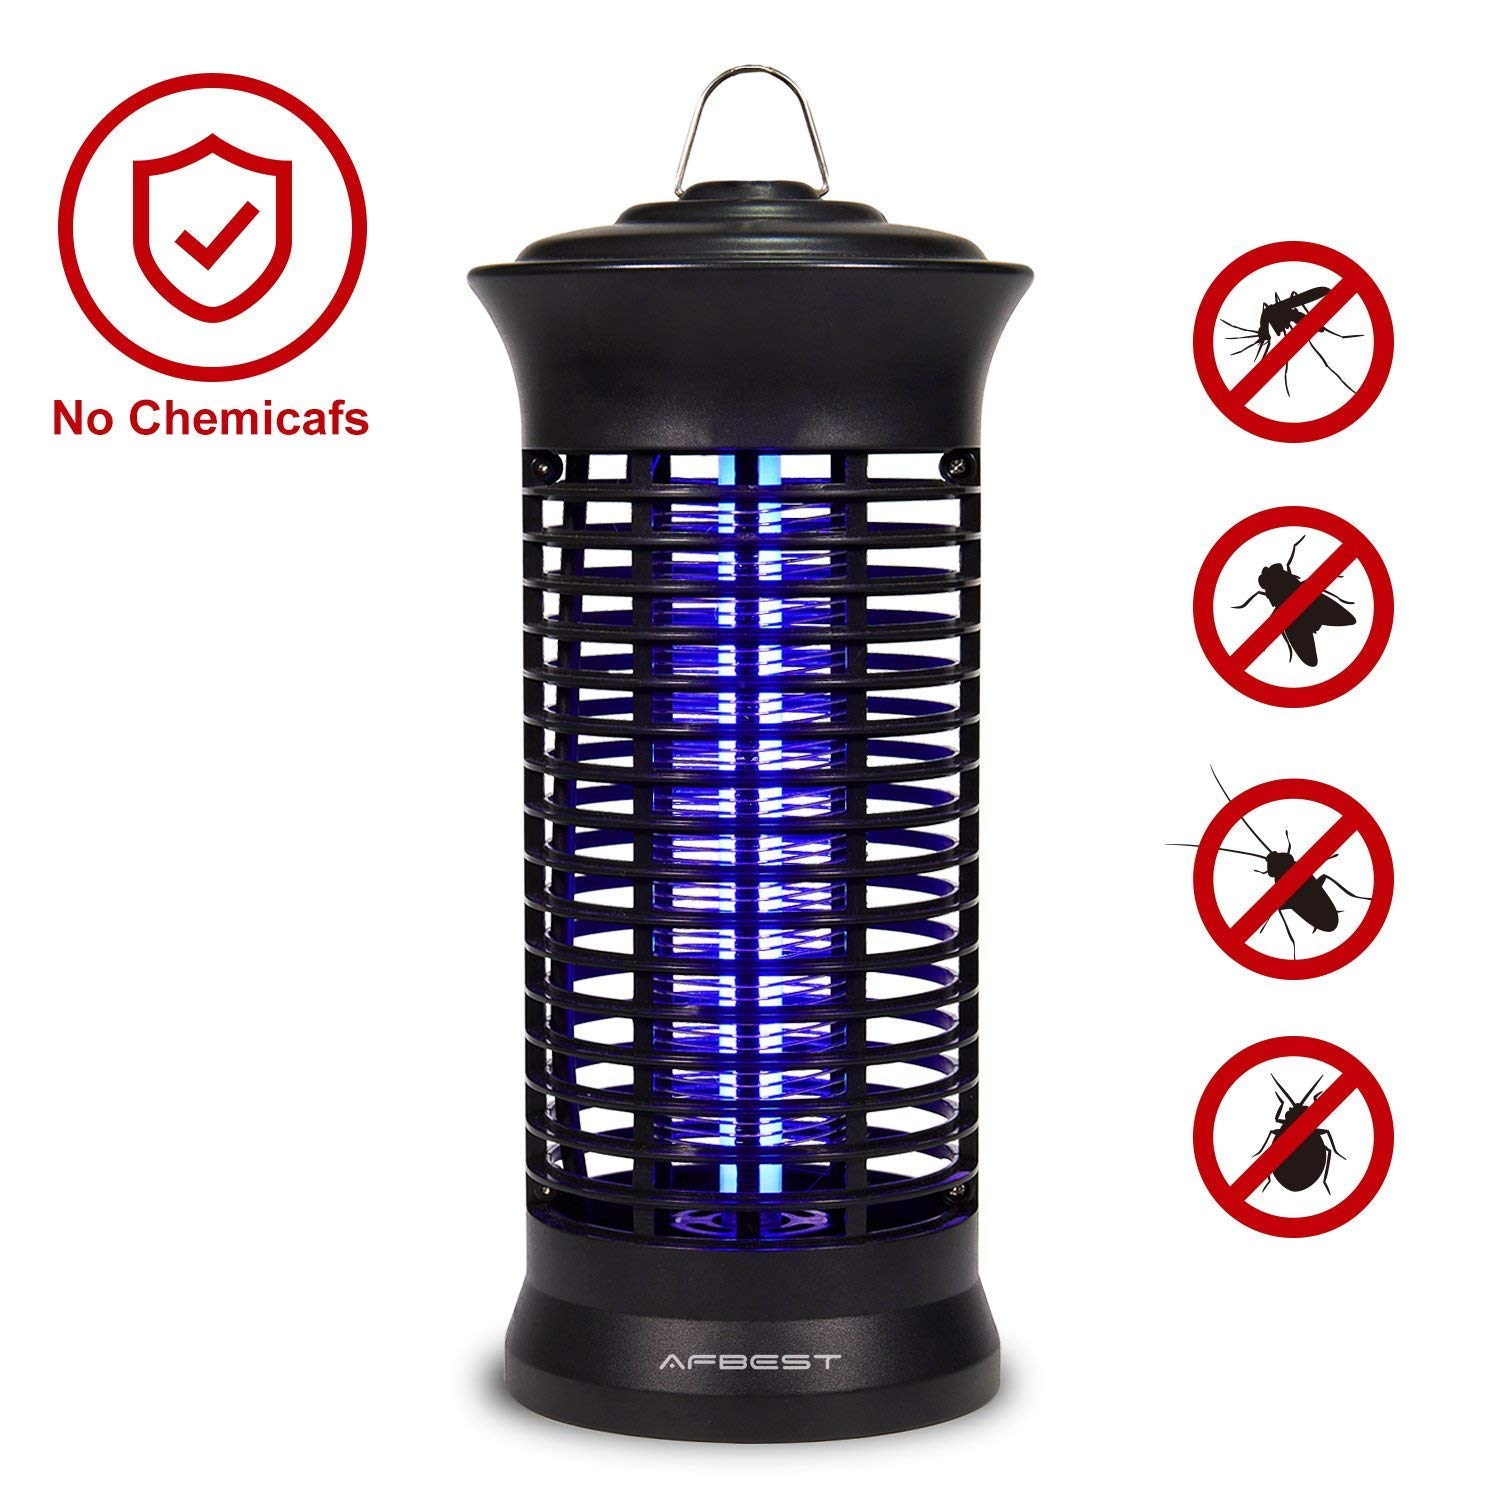 AFBEST Electric Indoor Bug Zapper,Mosquito Killer, Fly Zapper Catcher Killer Trap with UV Bug Light with Large Coverage 100% Safety for Home, Office and Patio Indoor use